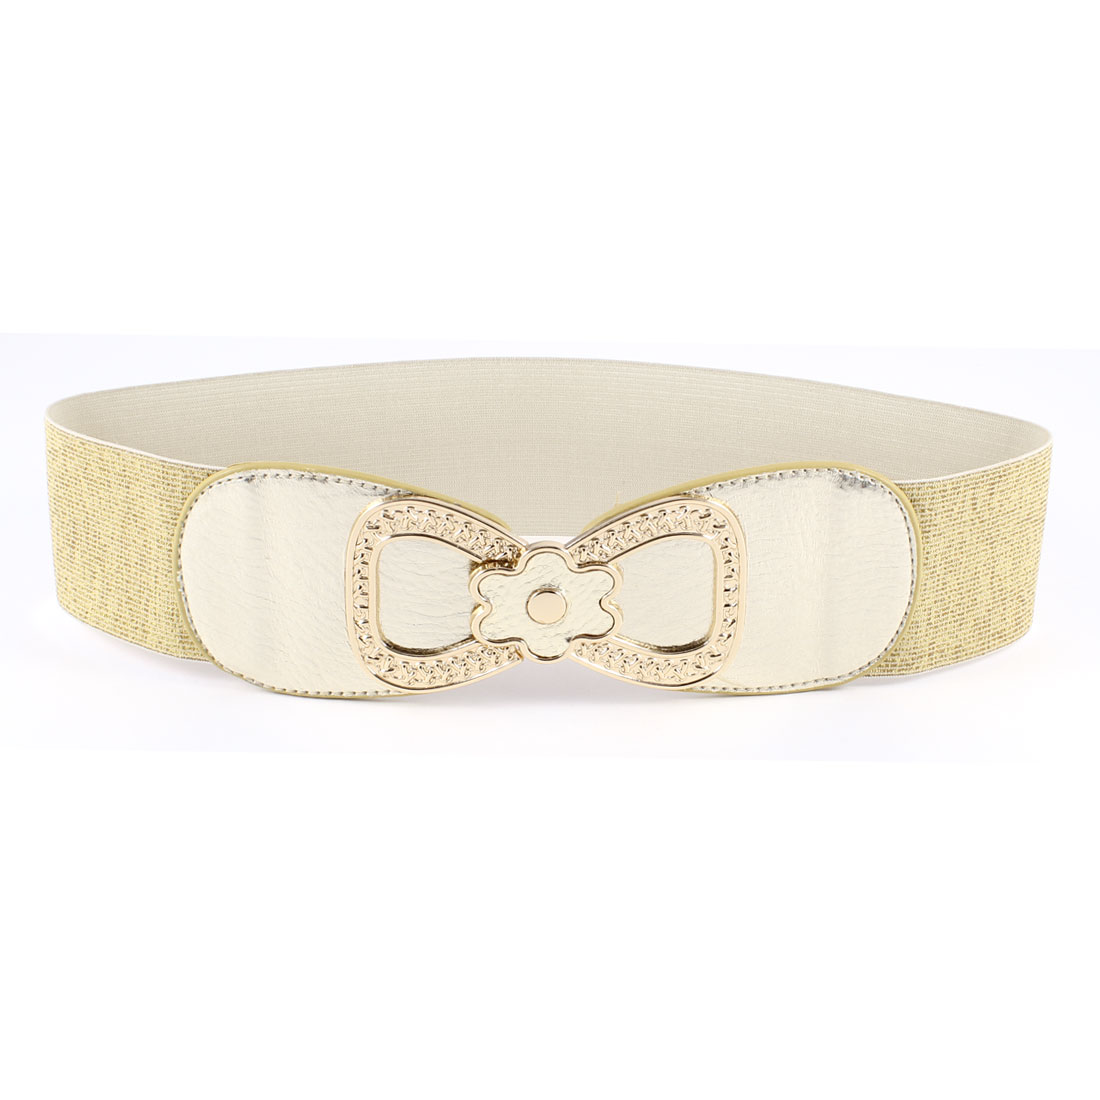 Gold Tone Woman Faux Leather Metal 8 Shape Interlock Buckle Stretchy Waist Belt